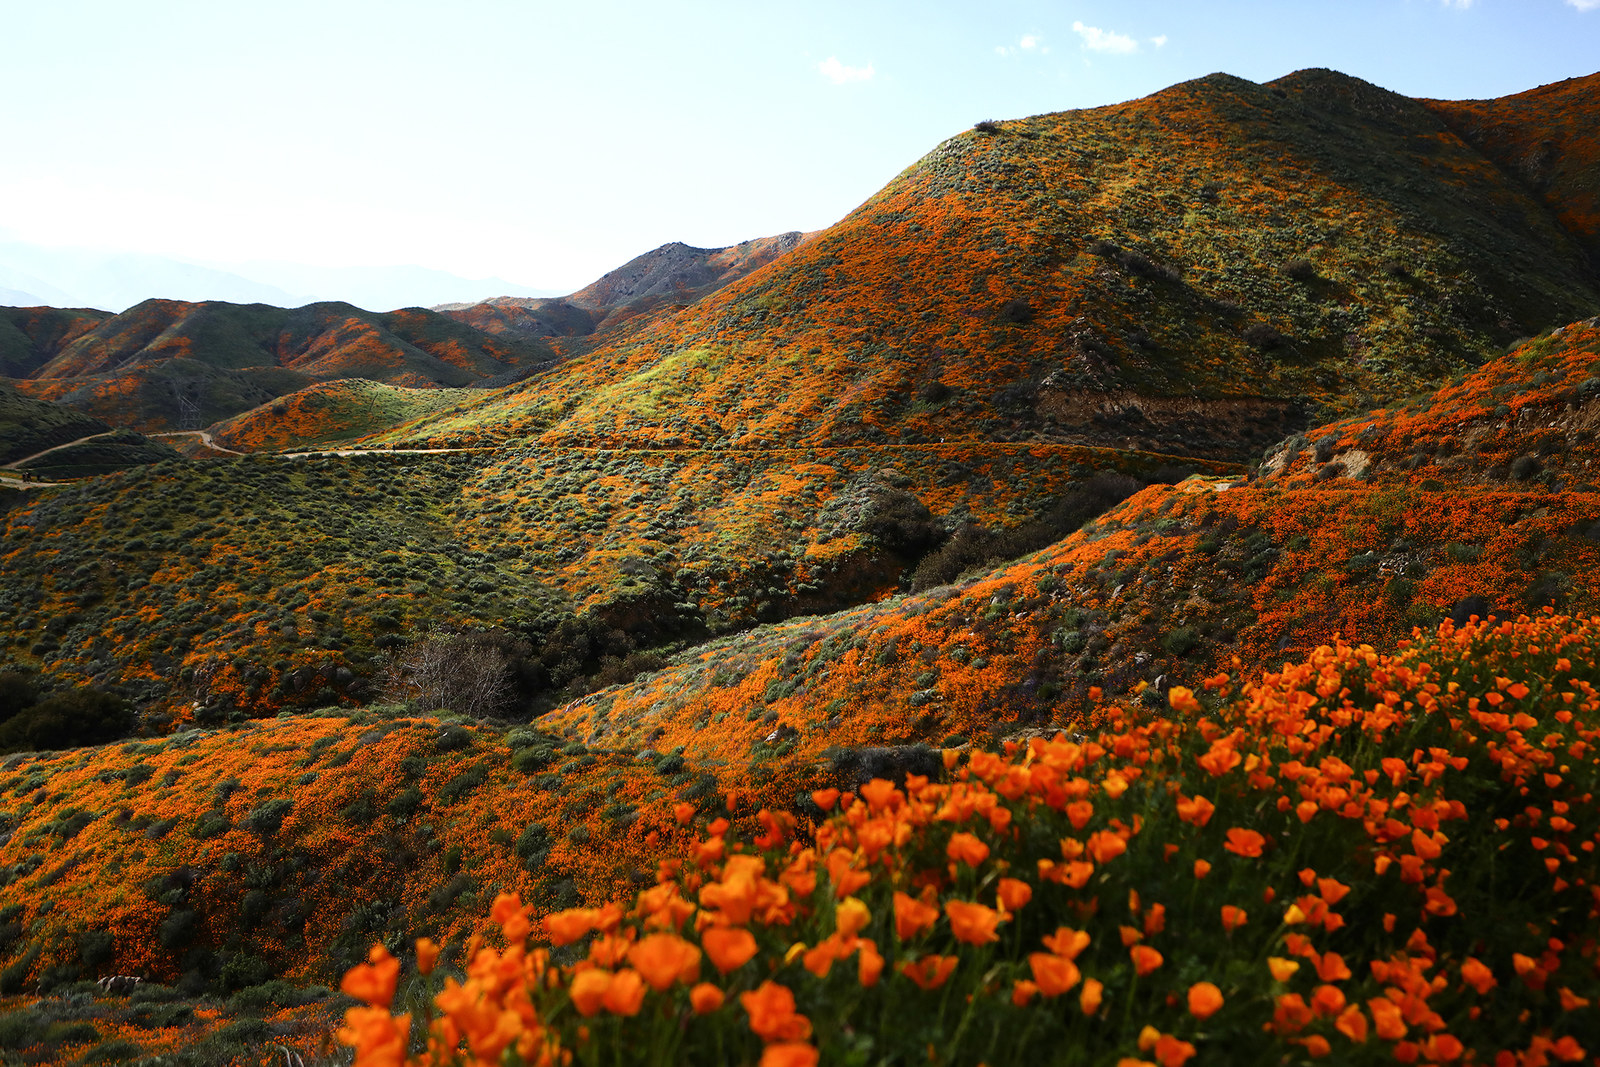 Wild poppies on the hills of Walker Canyon, March 12.